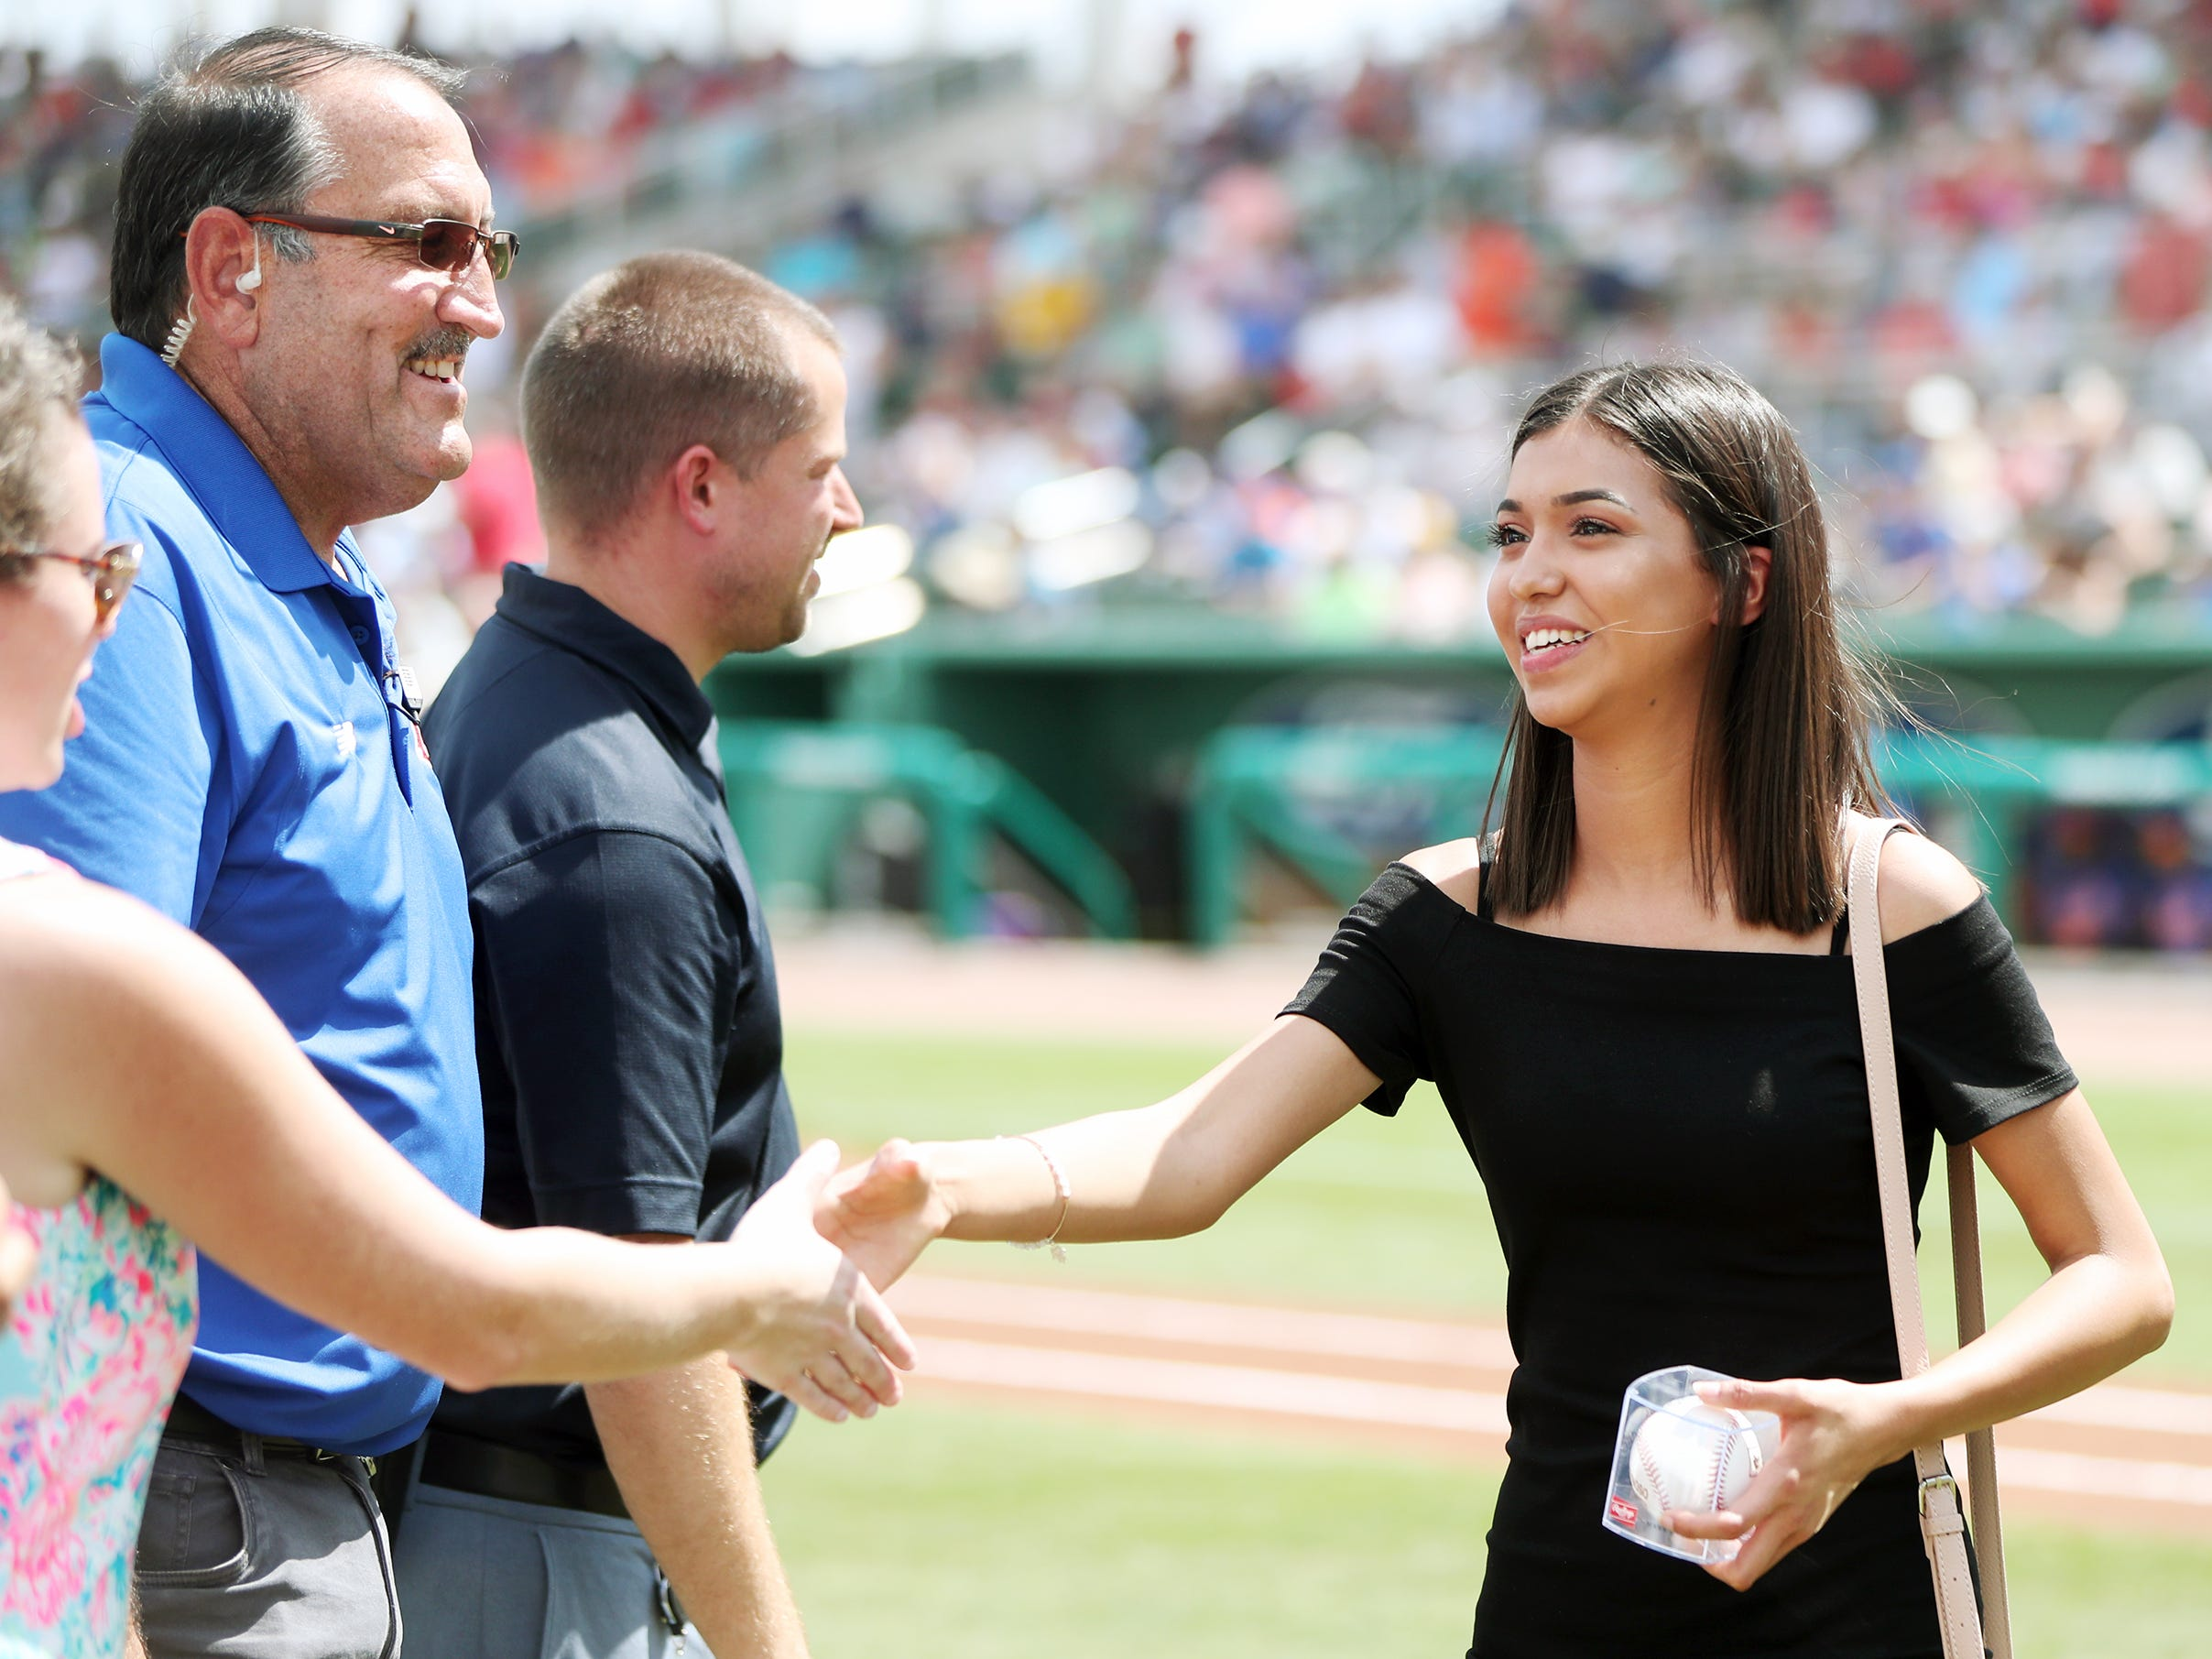 East Lee County High School's Cecilia Reynoso was one of 13 Lee County public high school seniors that received a $5,000 scholarship from the Boston Red Sox Foundation on Saturday before the team's game against the New York Mets at JetBlue Park in Fort Myers. The students' academic achievements and community service efforts were the basis for the honor.